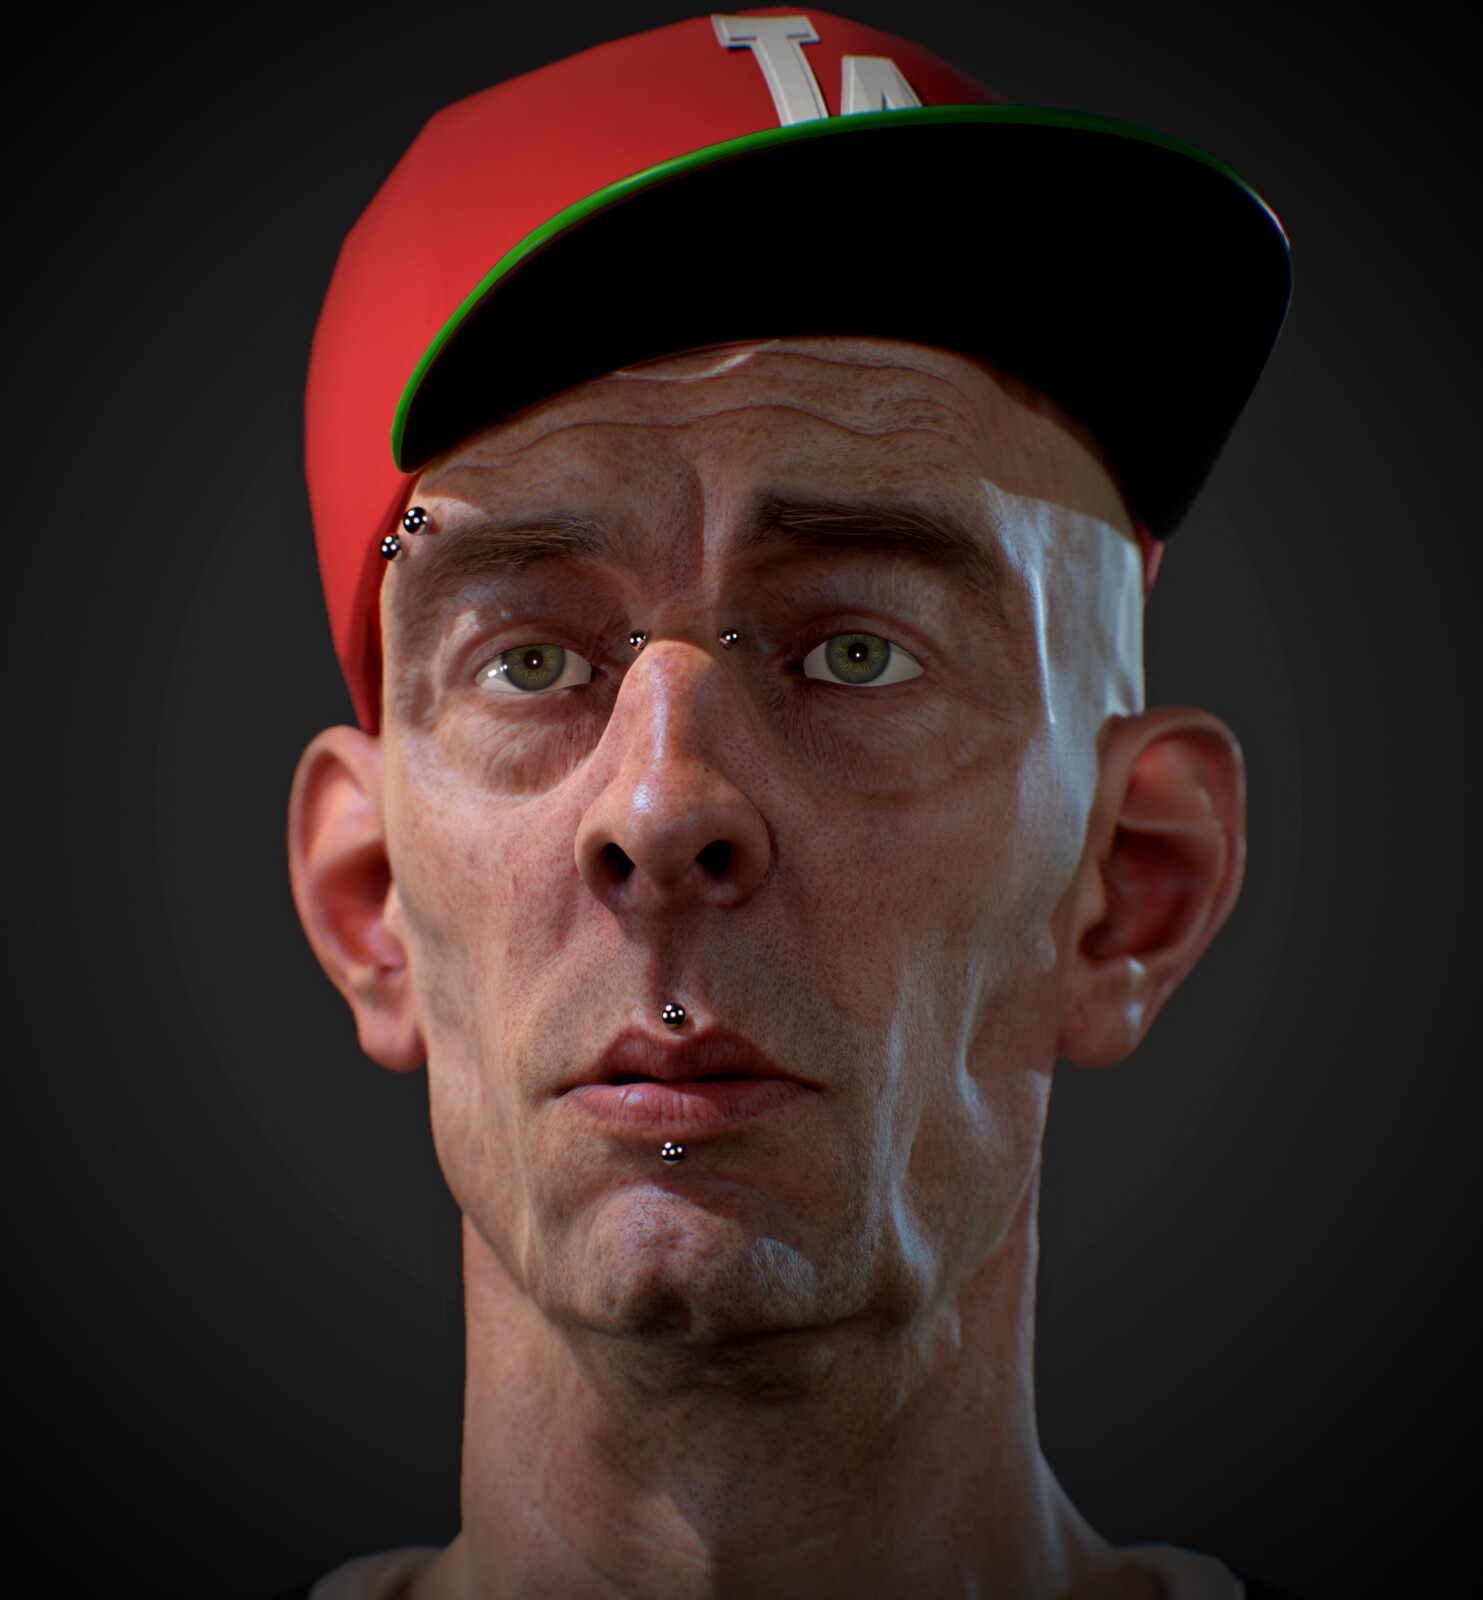 LA Dodger Fan - Marmoset Toolbag 3 renders